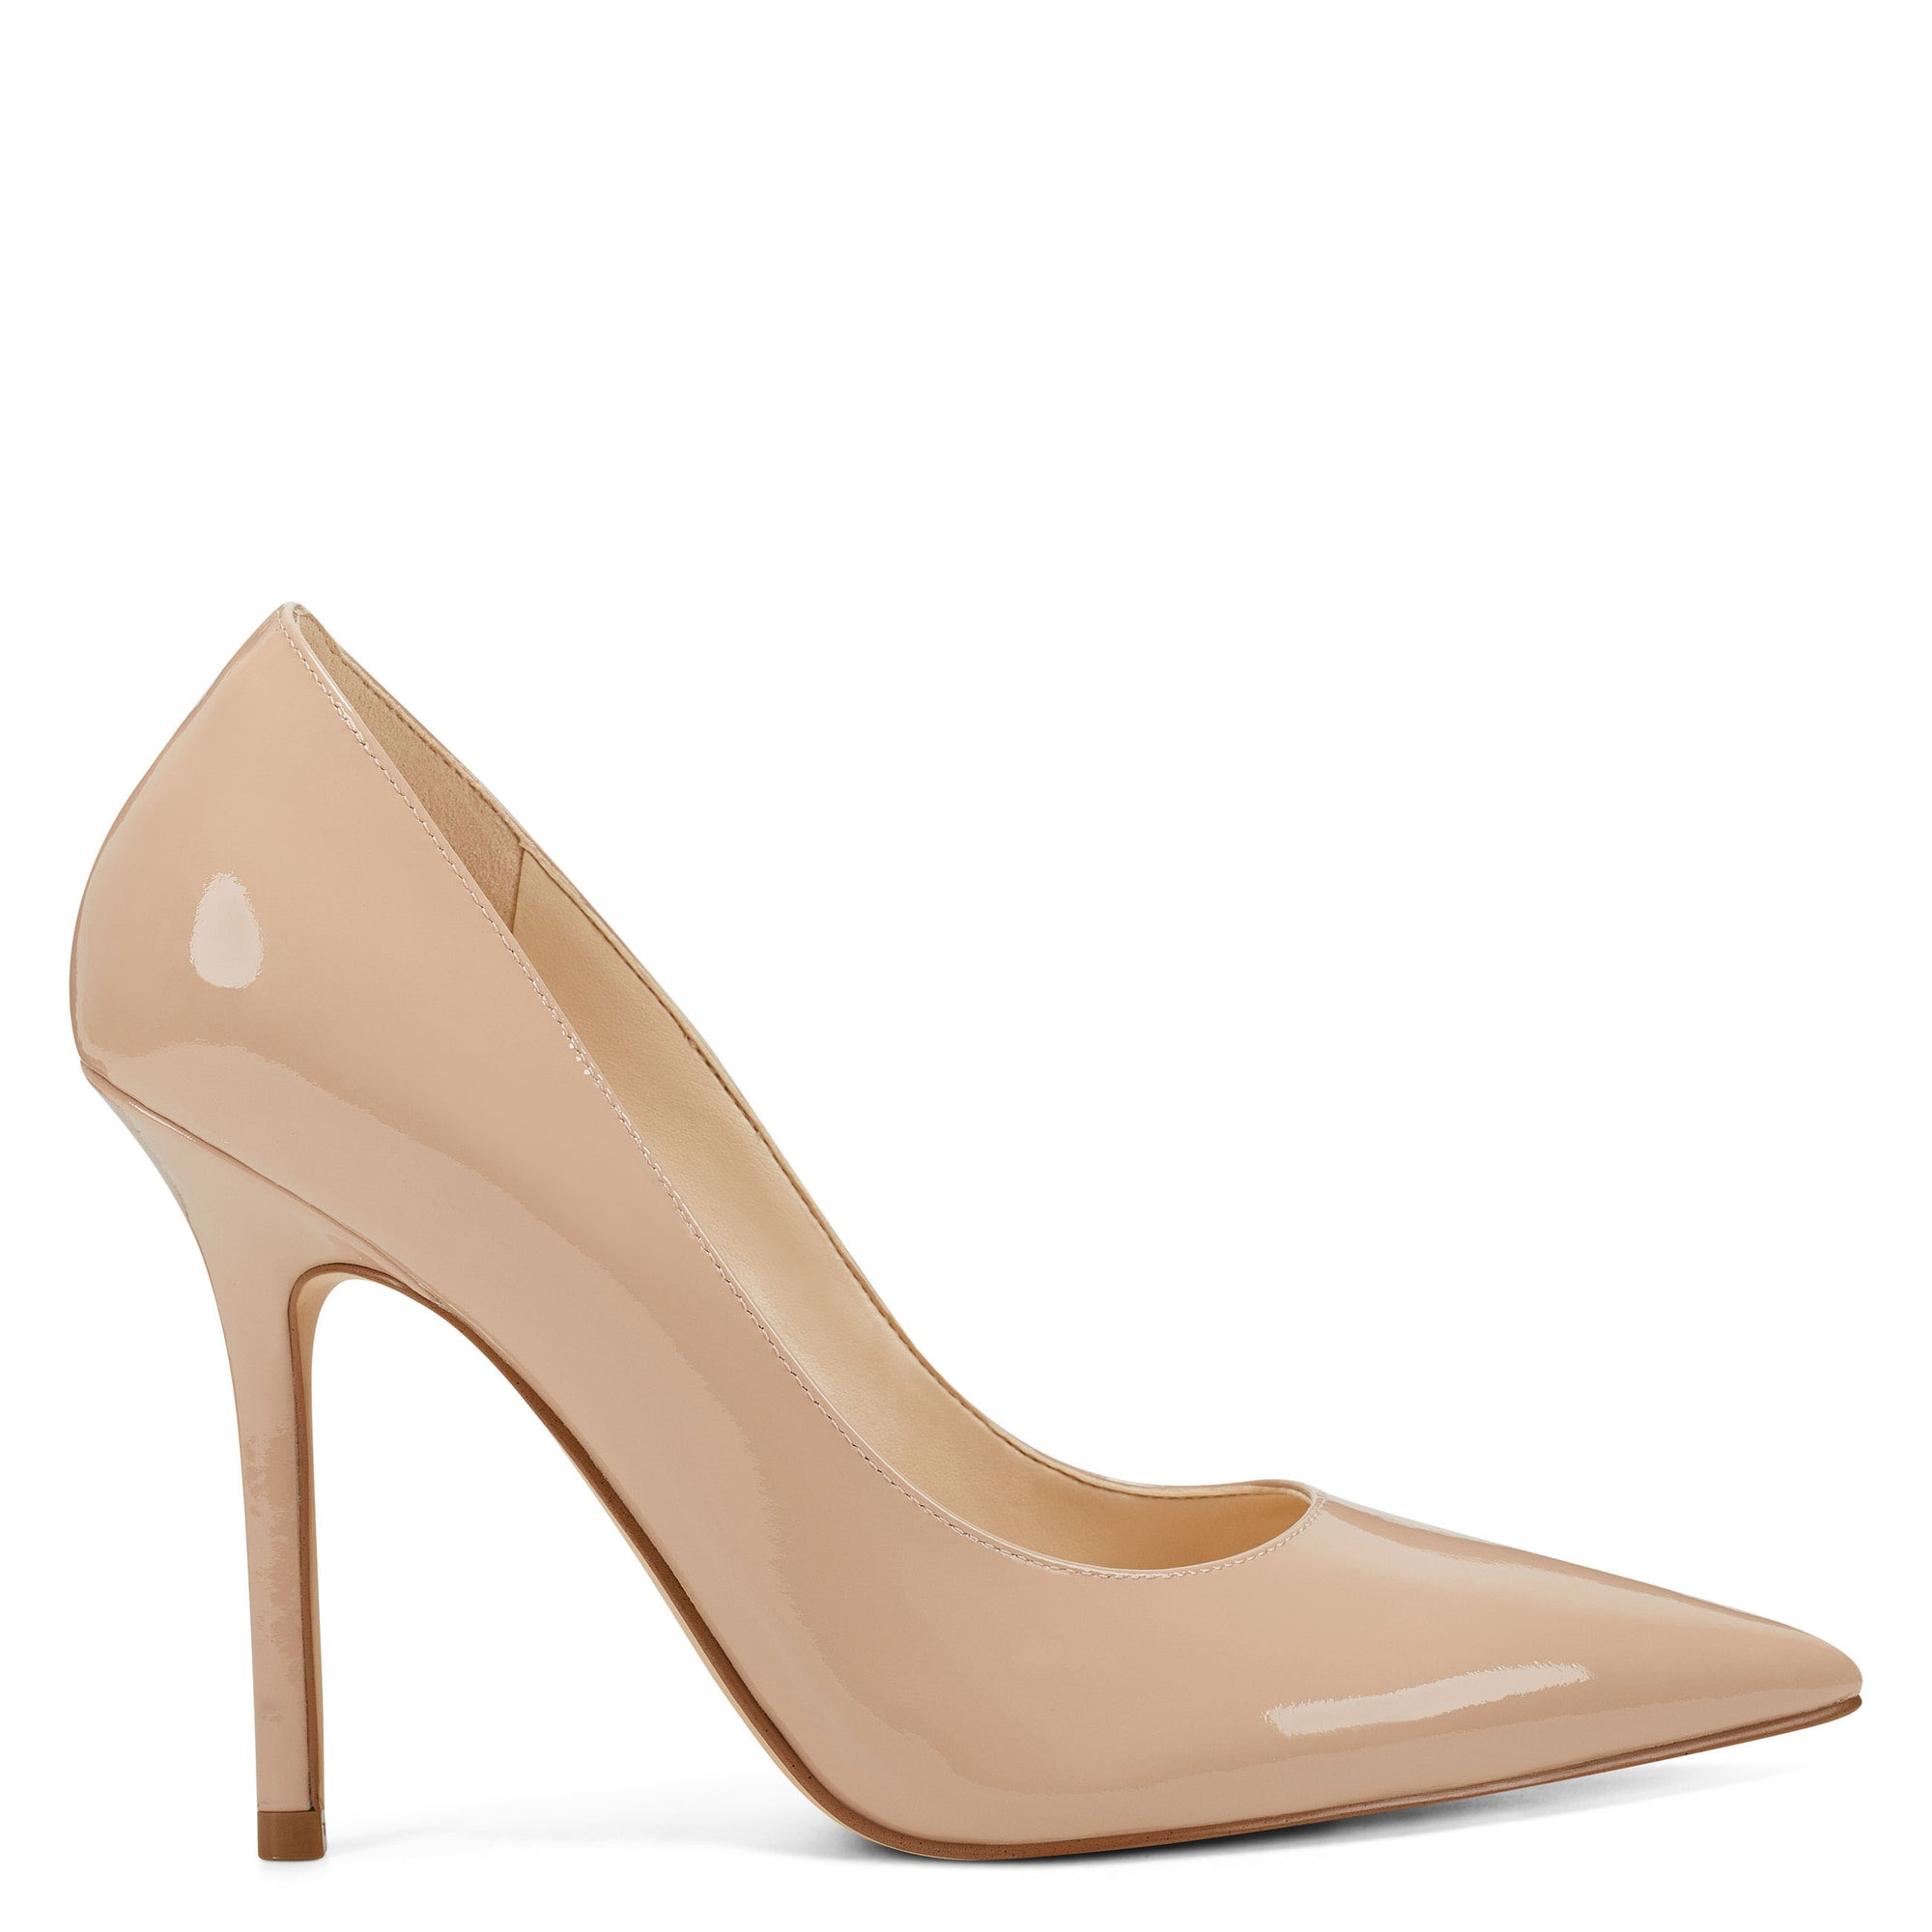 bliss-pointy-toe-pumps-in-taupe